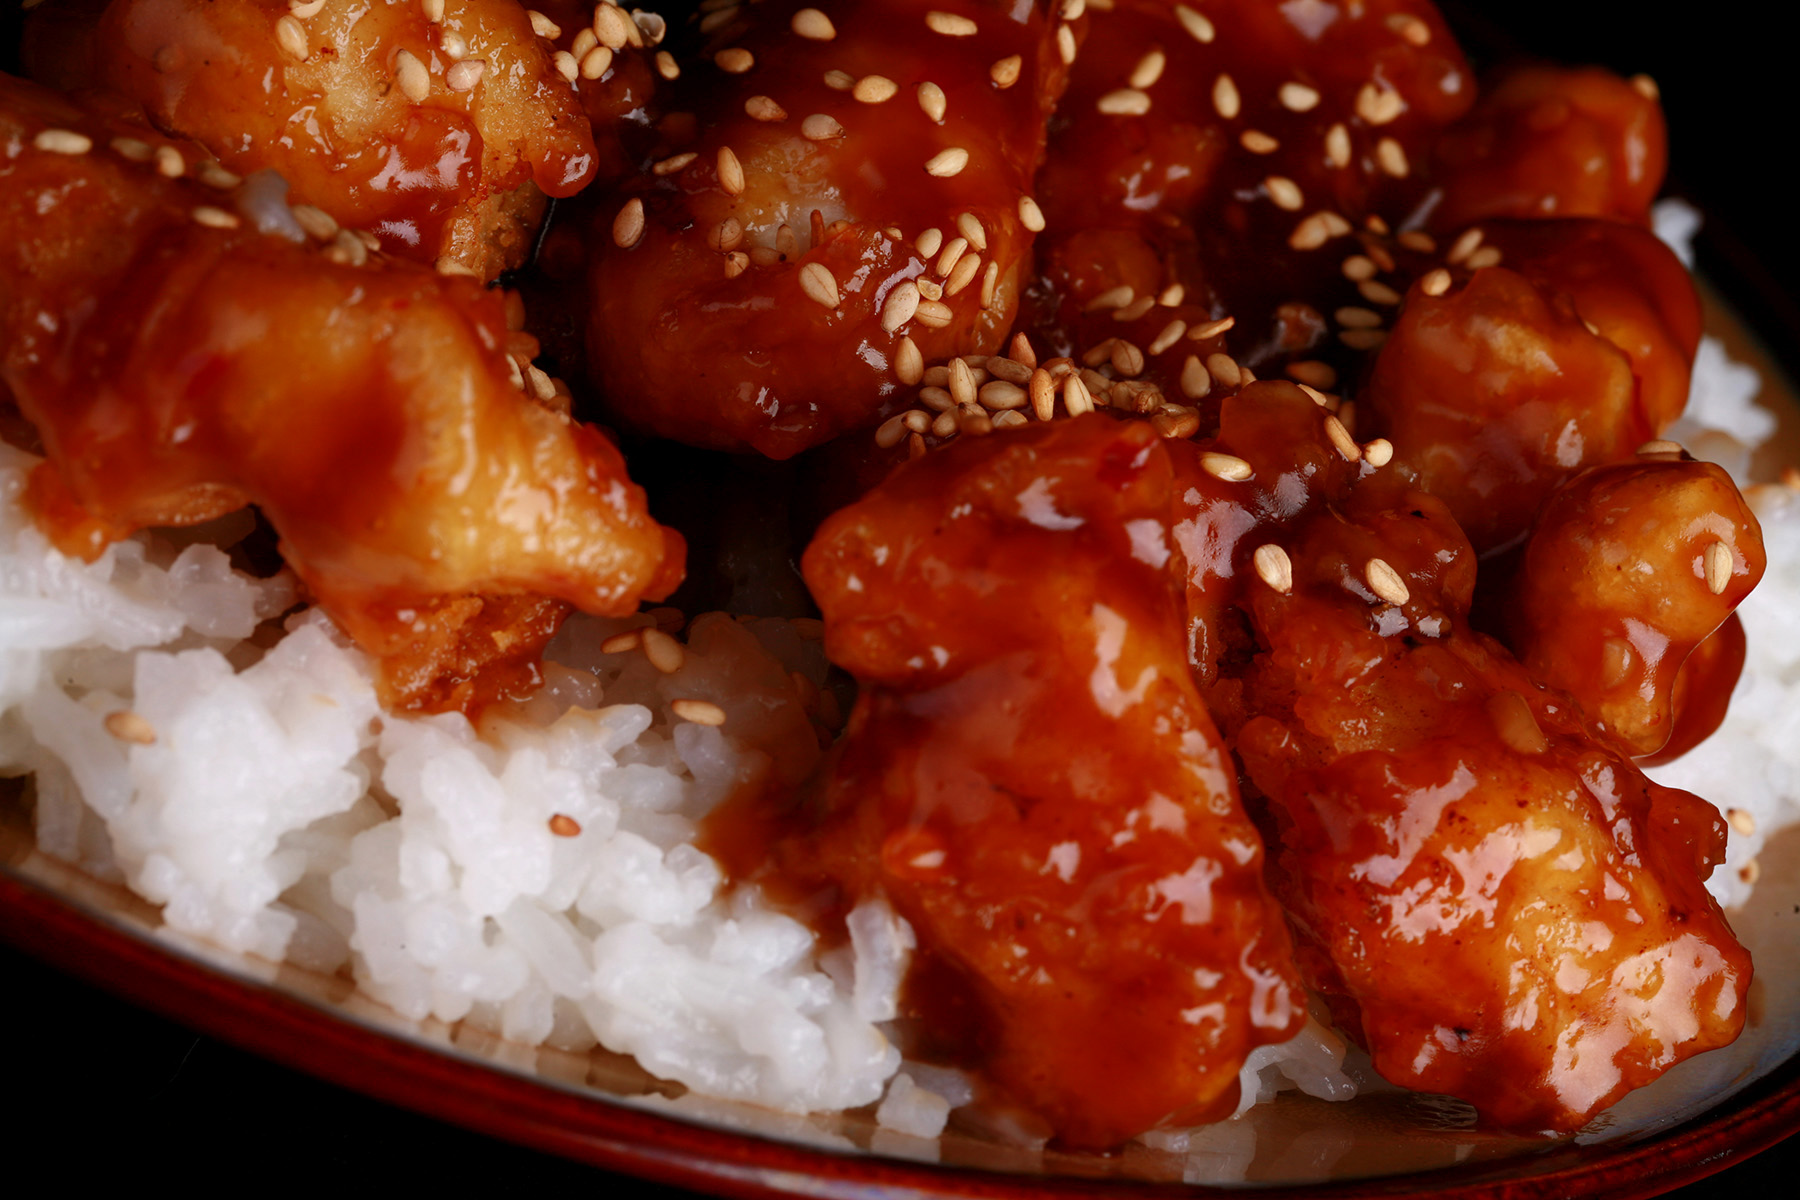 A close up view of a plate of white rice, topped with gluten-free sesame chicken. Chunks of battered and fried chicken in a glossy brown sauce, sprinkled with sesame seeds.